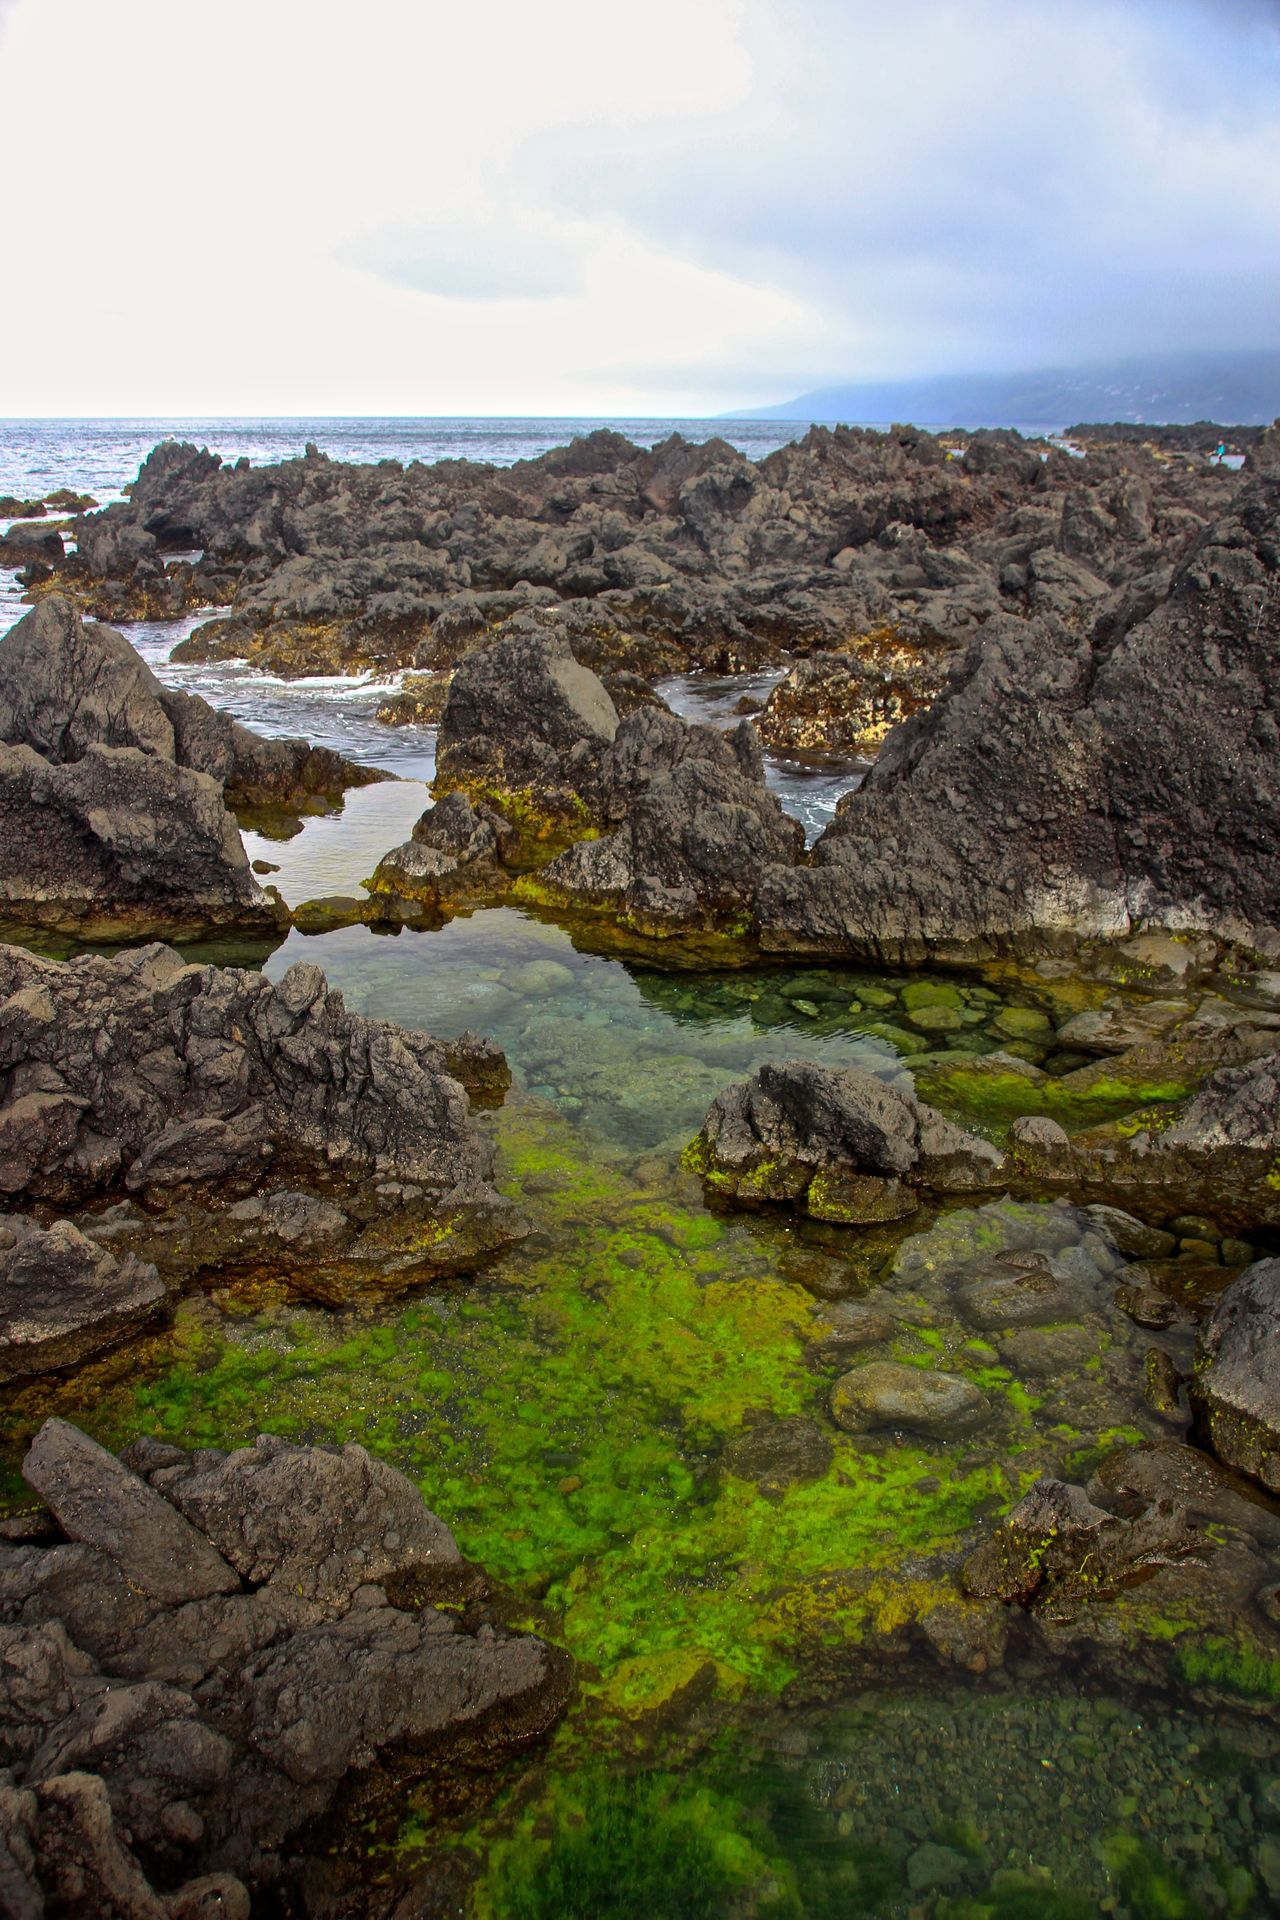 Azores Açores Beauty In Nature Coast Day Growth Landscape Nature No People Ocean Outdoors Pico Island Rock Pool Scenics Sea Sky São Roque Do Pico Tranquil Scene Tranquility Water